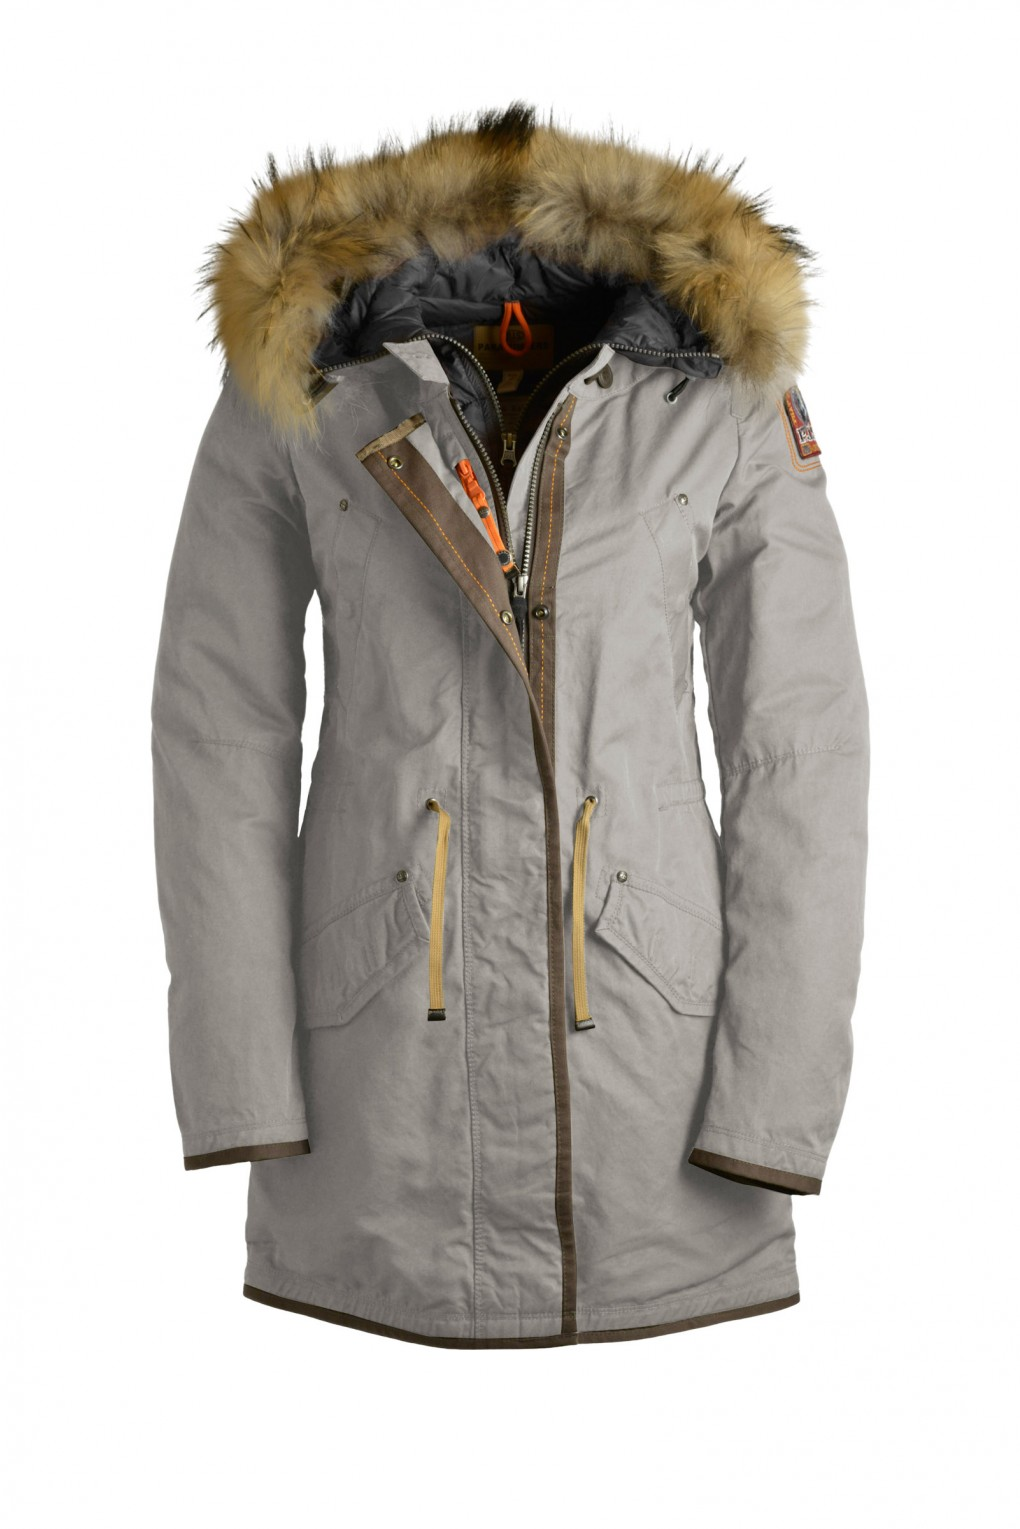 parajumpers MARILYN woman outerwear Ecru